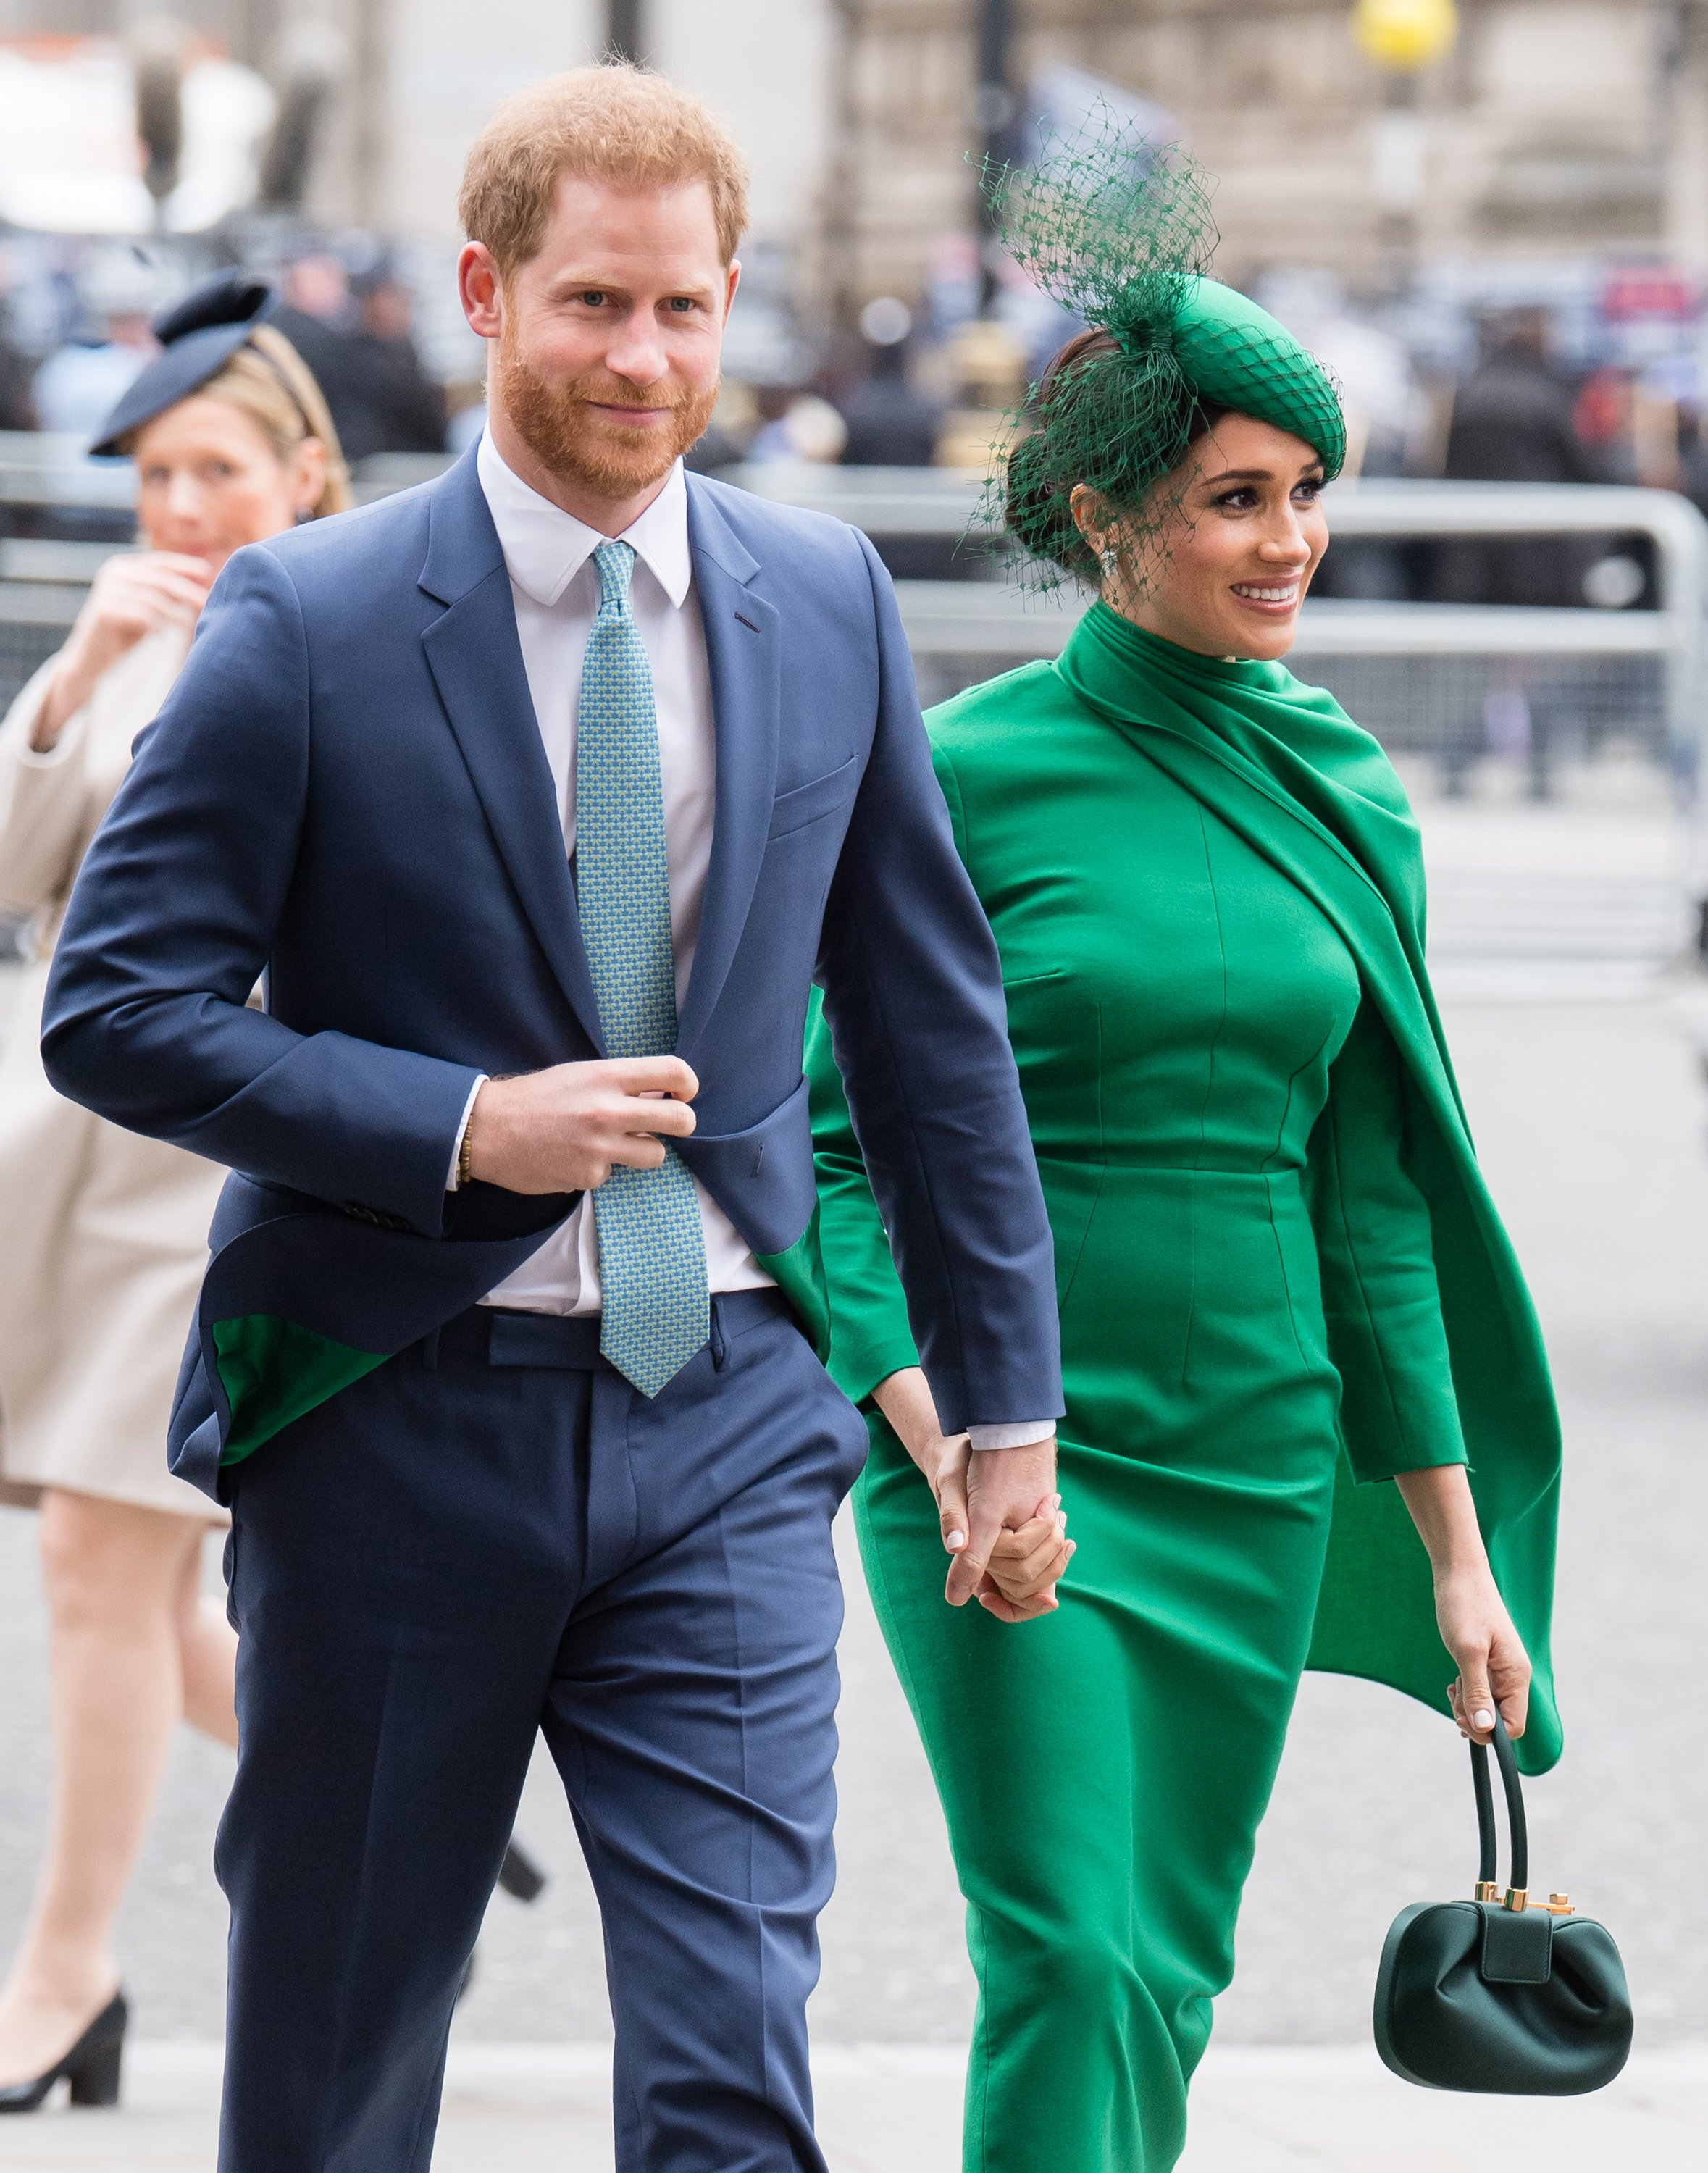 Prince Harry and Meghan Markle attend the Commonwealth Day Service 2020 on March 09, 2020, in London, England. | Source: Getty Images.